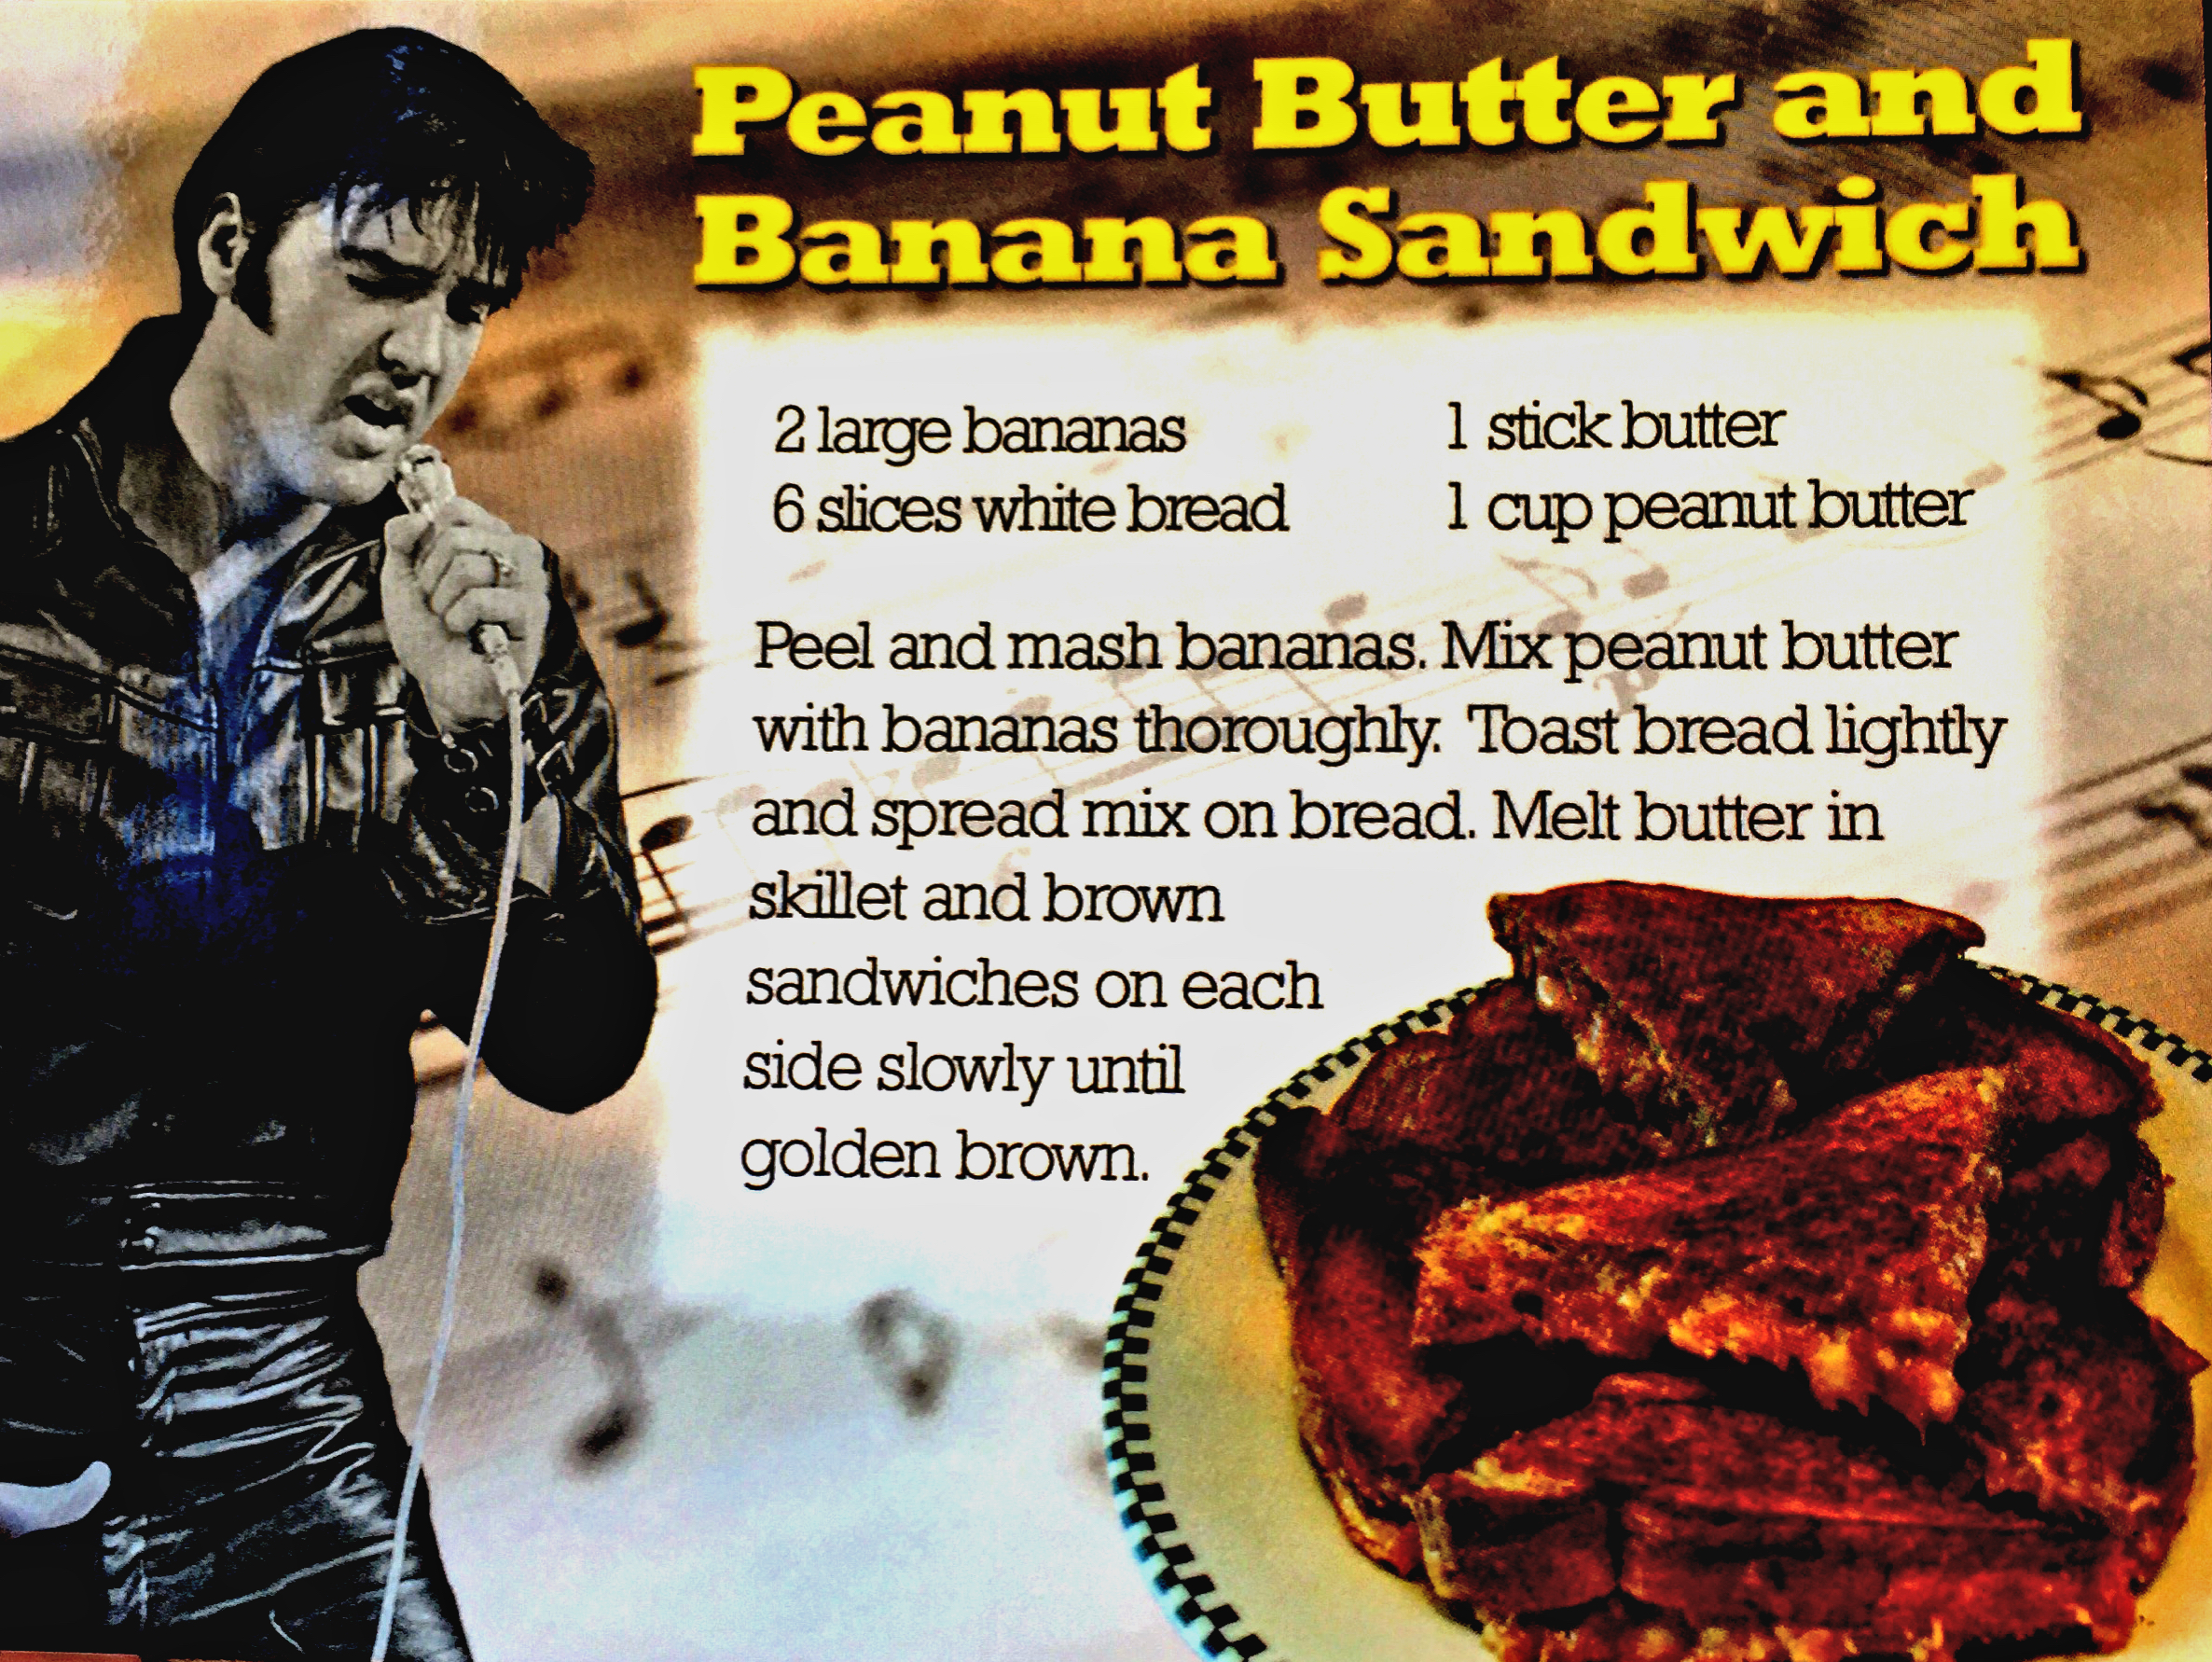 Elvis' Famous Fried PB & Banana Sandwich